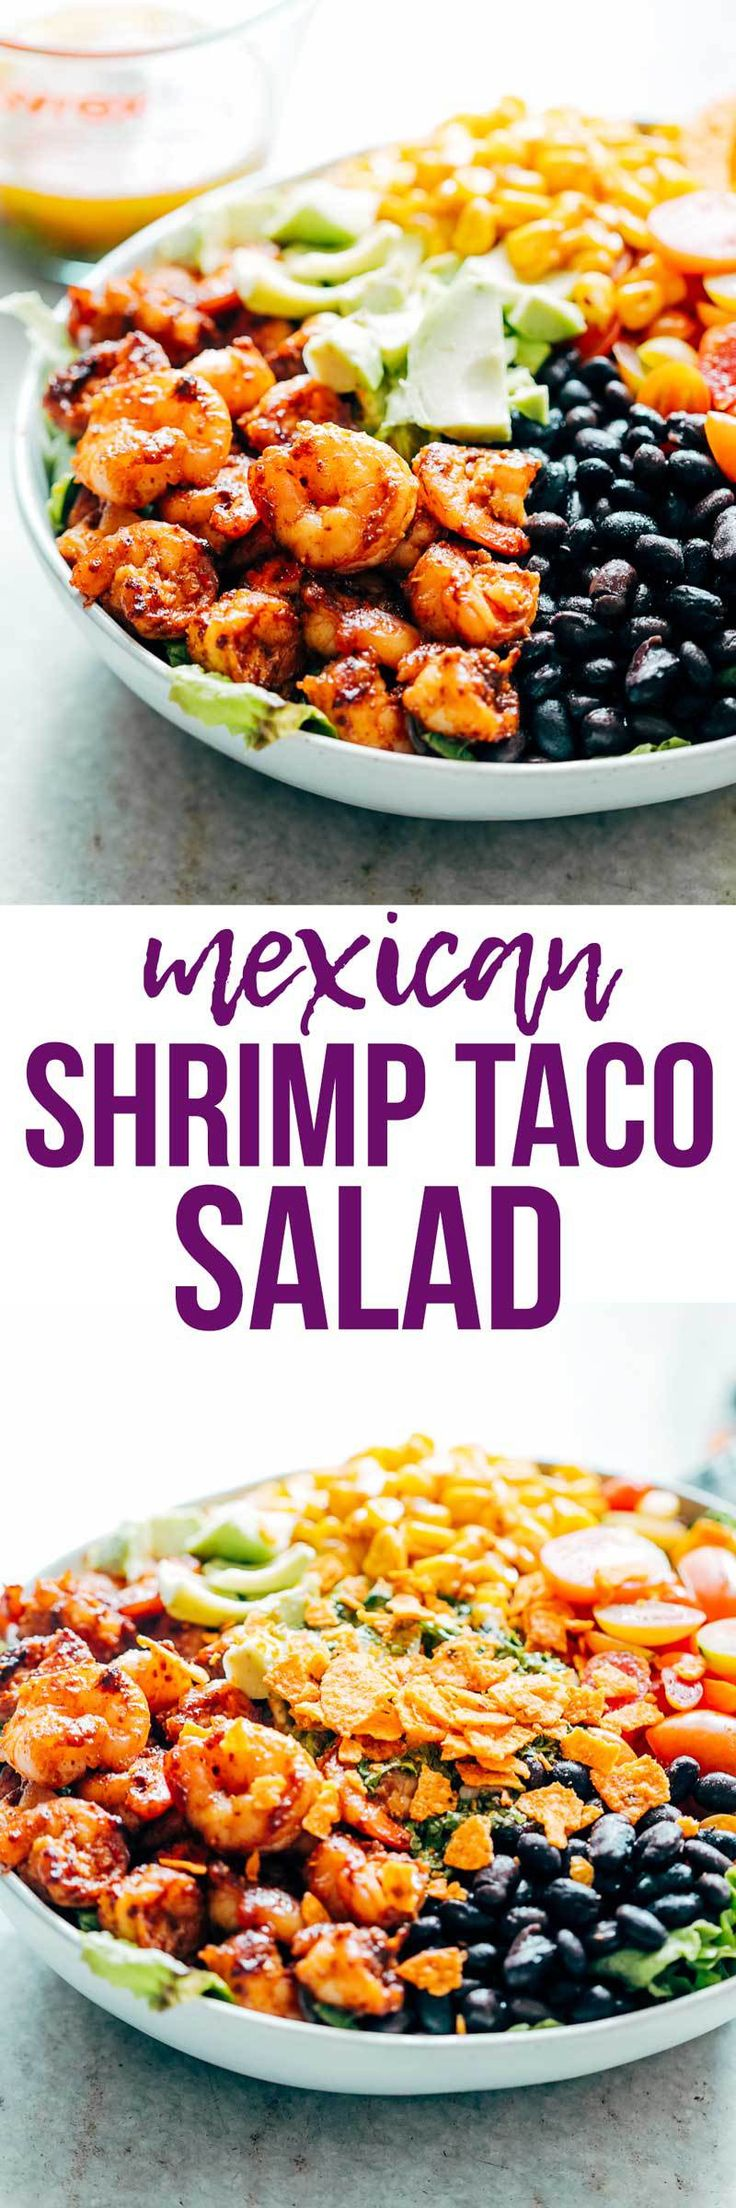 Mexican Prawn Avocado Taco Salad is a delicious, hearty salad that has all the flavors of your favorite Mexican taco, but healthier. Loaded with lettuce, black beans, avocado, cherry tomatoes, corn and a delicious cilantro lime dressing, it's perfect when you want salad for dinner. My Food Story | Salad | Mexican Food | Lunch | Dinner | Shrimp | Salad Recipe | Dressing Recipe